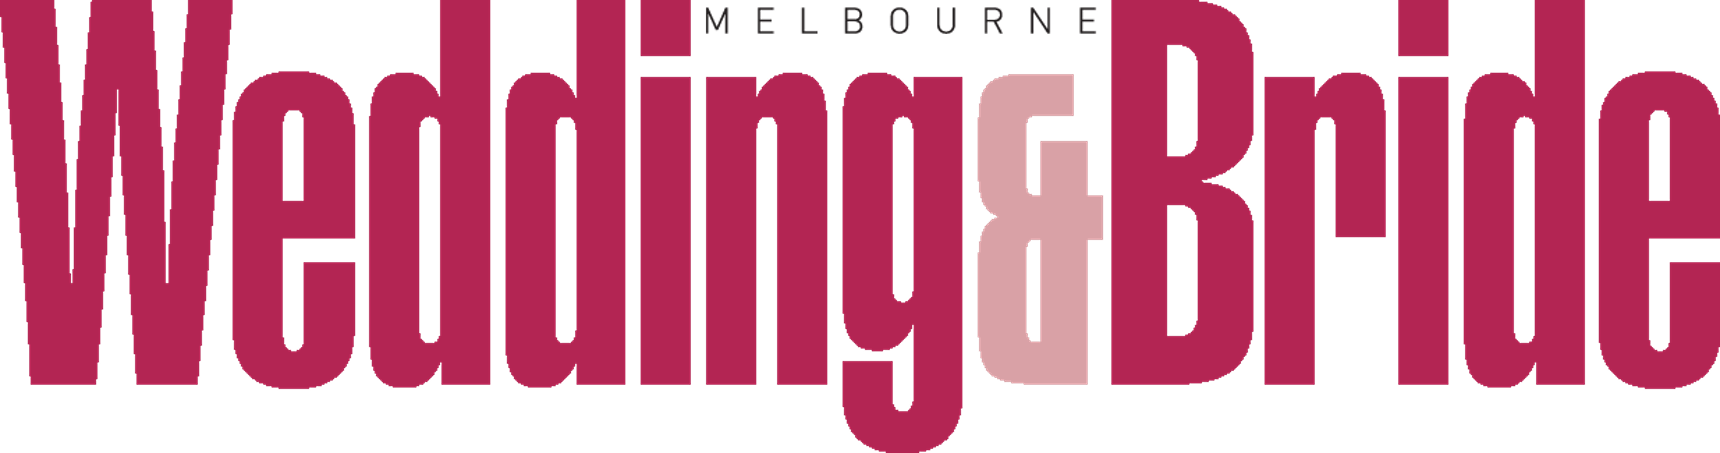 Melbourne weddings logo